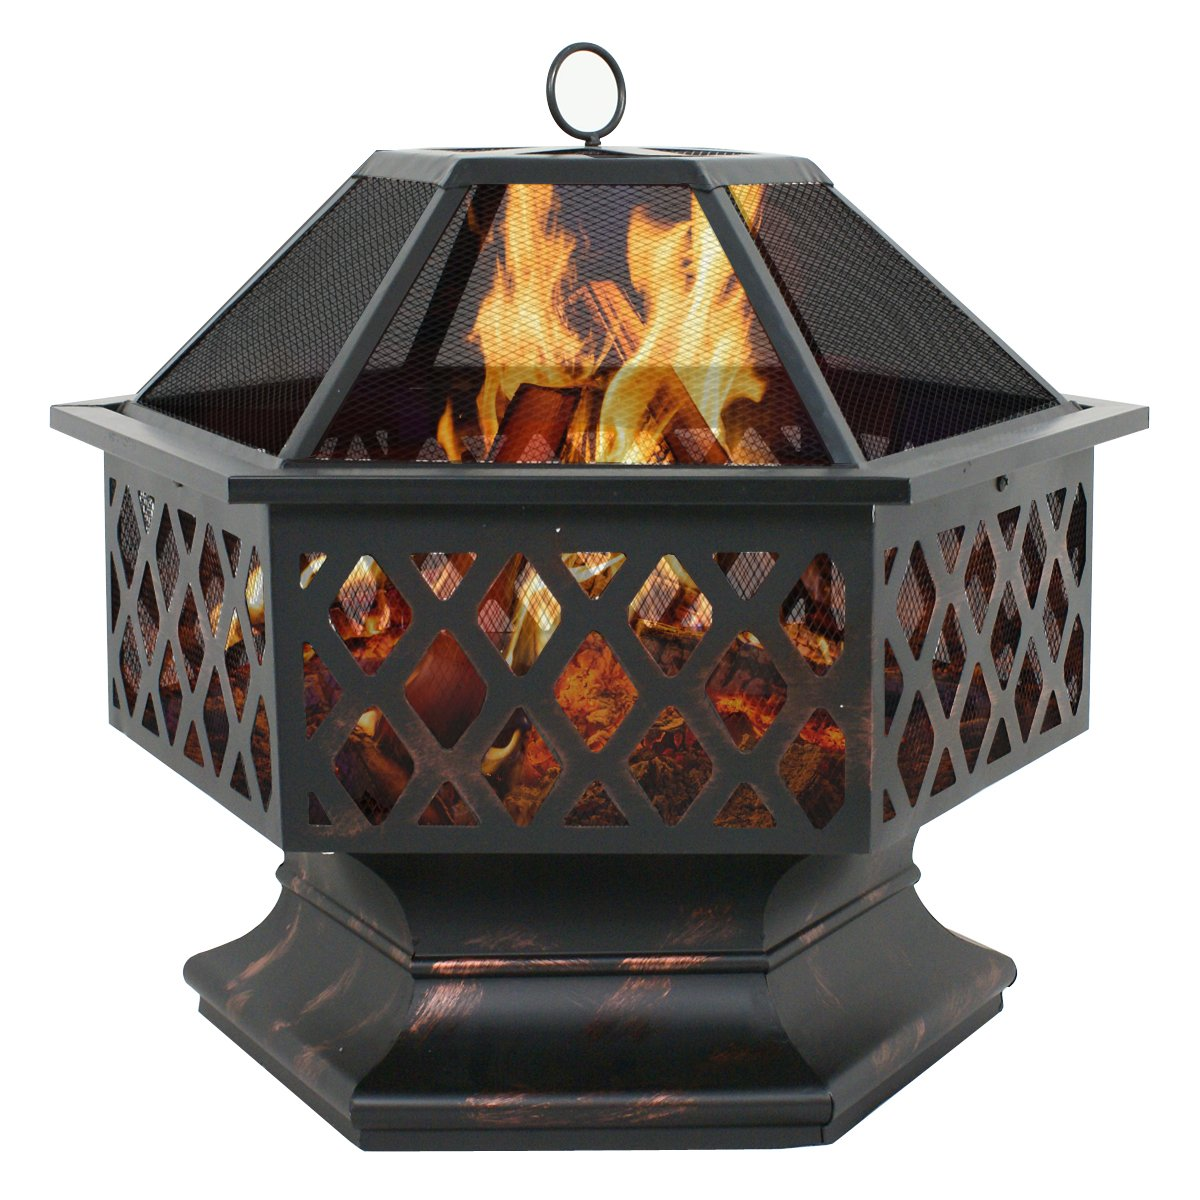 F2C Outdoor Heavy Steel 24'' Fire Pit Wood Burning Fireplace Patio Backyard Heater Steel Hex Shaped Firepit Bowl by F2C